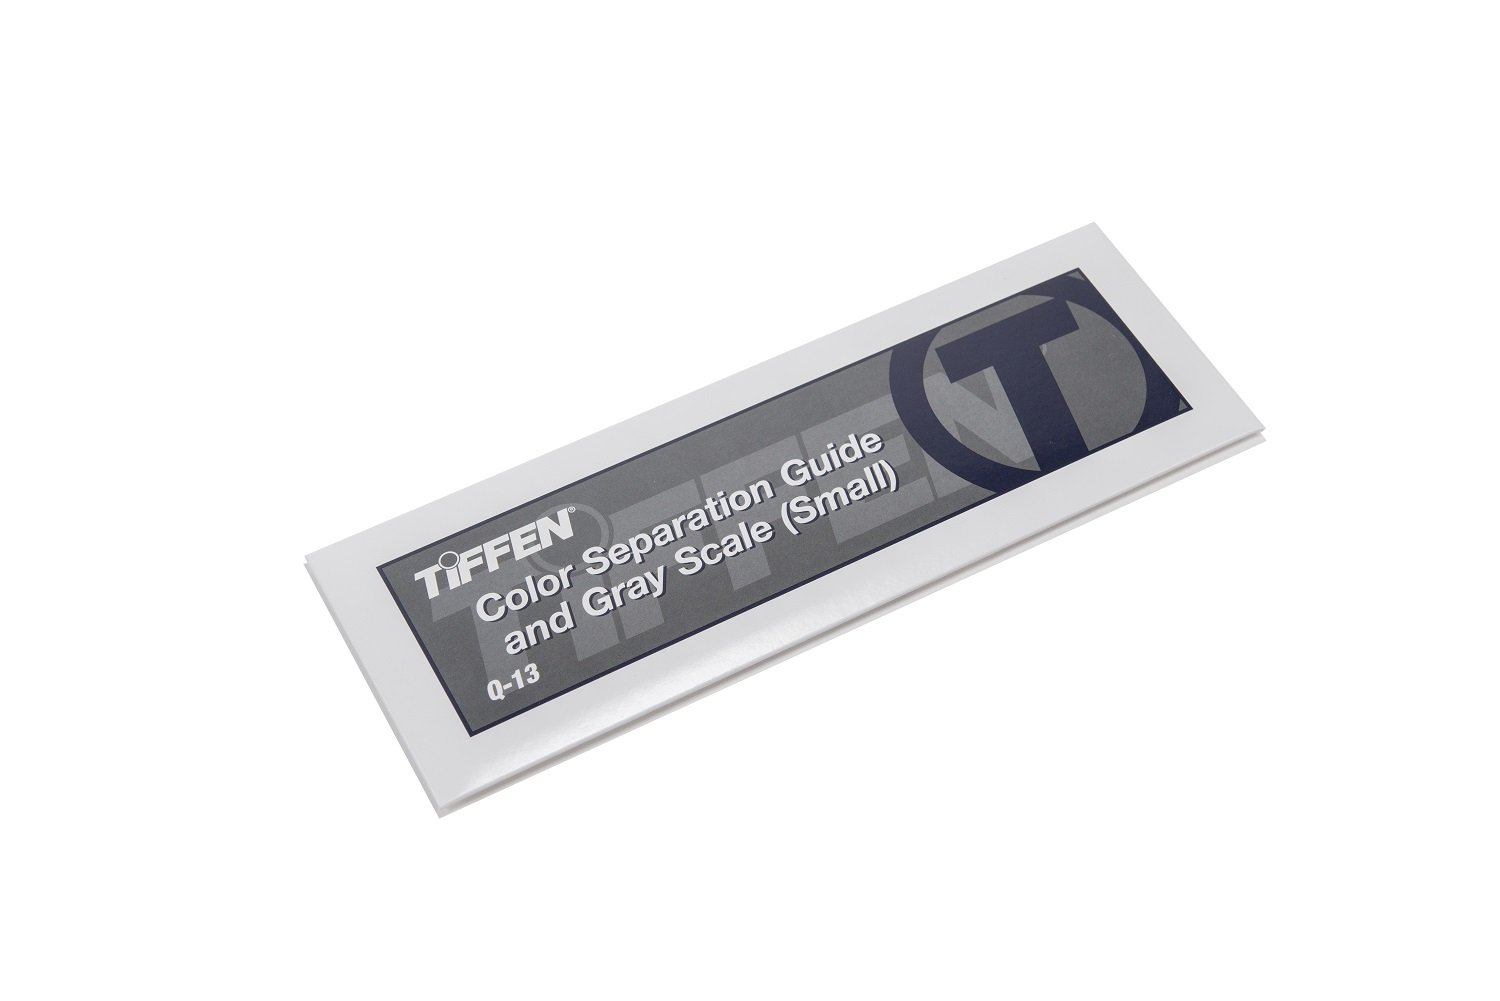 Amazon.com : Tiffen Color Separation Guide with Grey Scale, 8